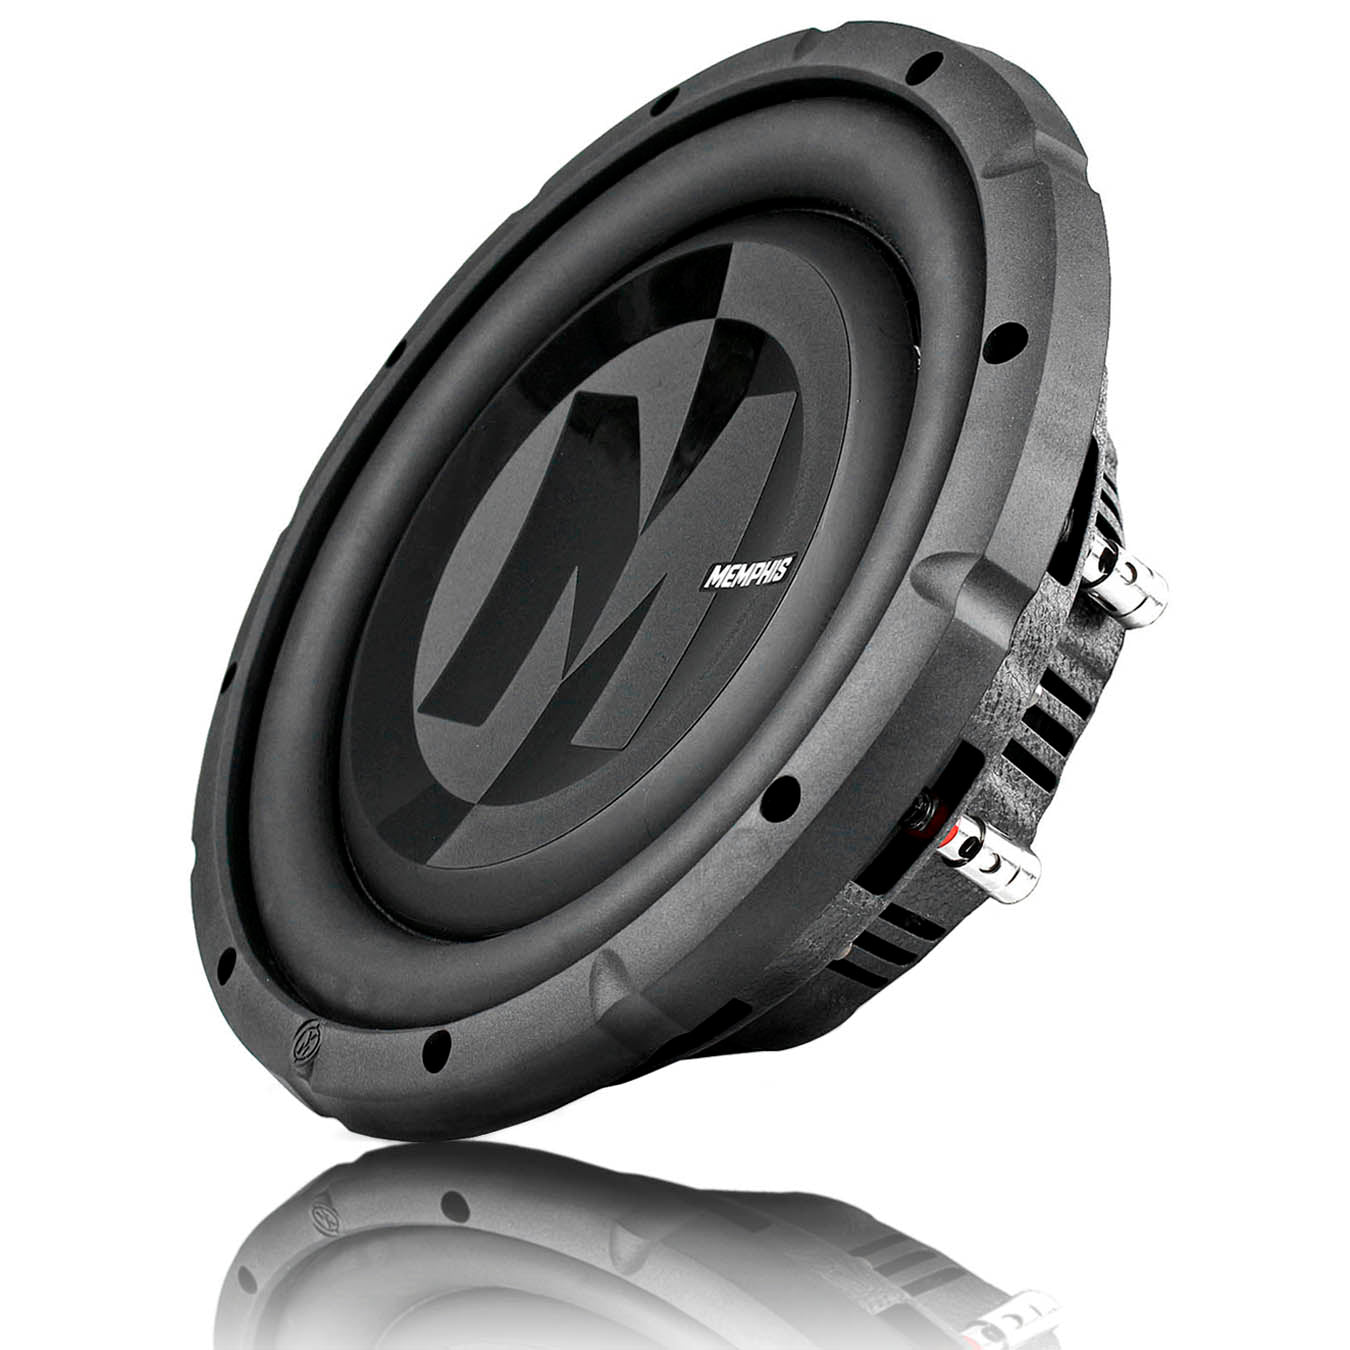 memphis audio 12 dvc shallow subwoofer 700w max 4 ohm power reference pricedrightsales memphis audio 12 dvc shallow subwoofer 700w max 4 ohm power reference prxs1244 memphis audio 12 dvc shallow subwoofer 700w max 4 ohm power reference